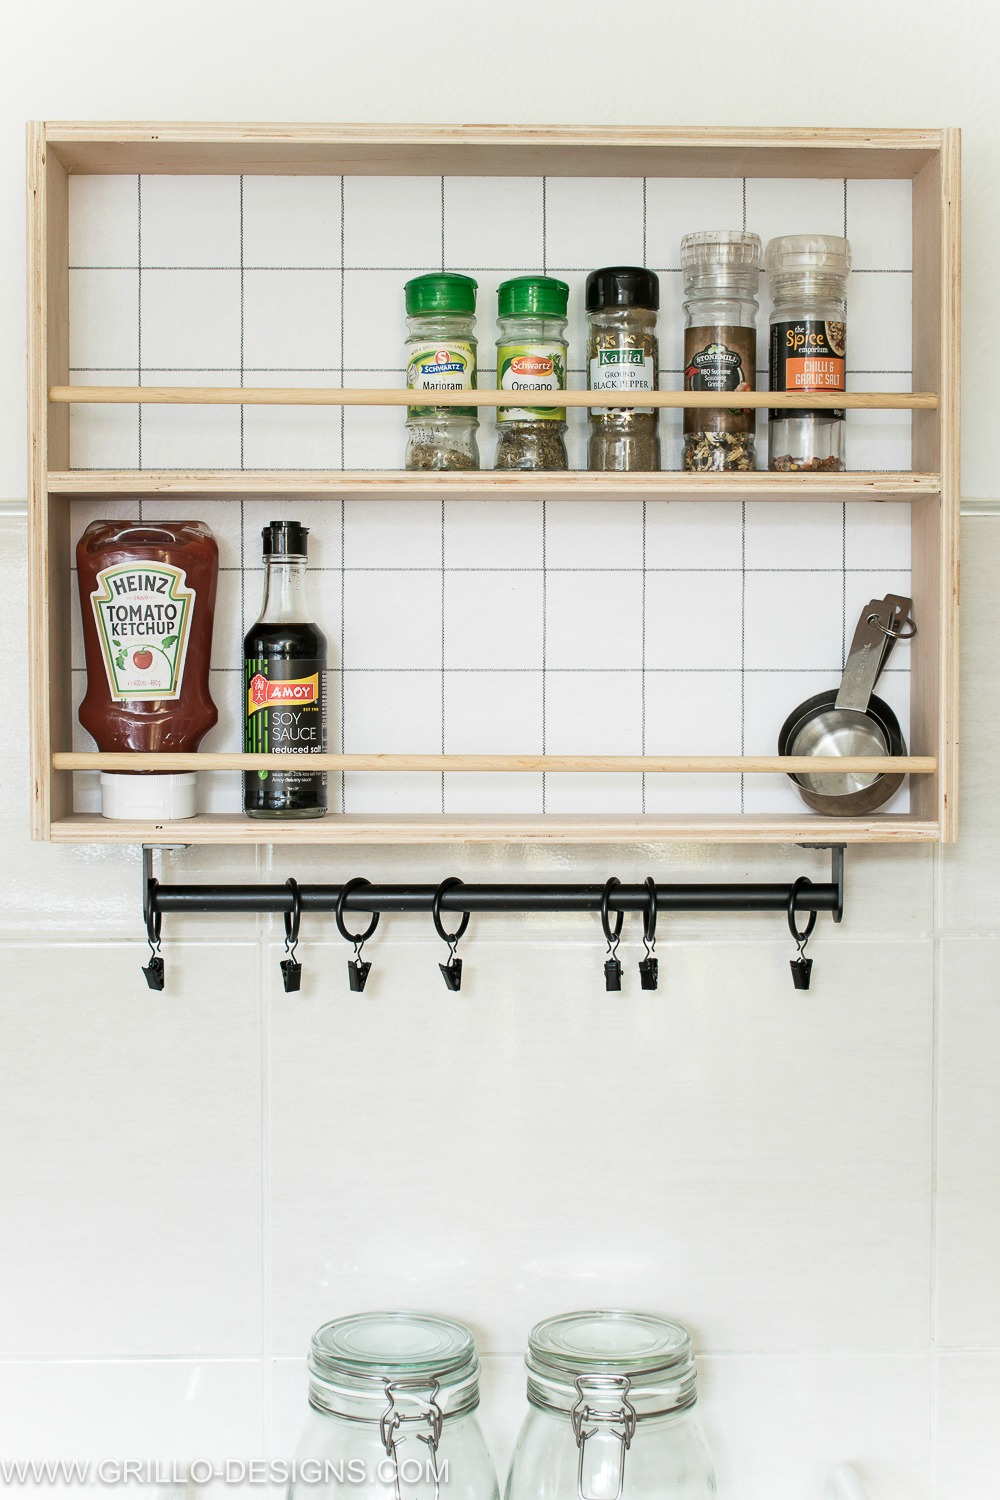 plywood hanging spice rack tutorial / grillo designs www.grillo-designs.com